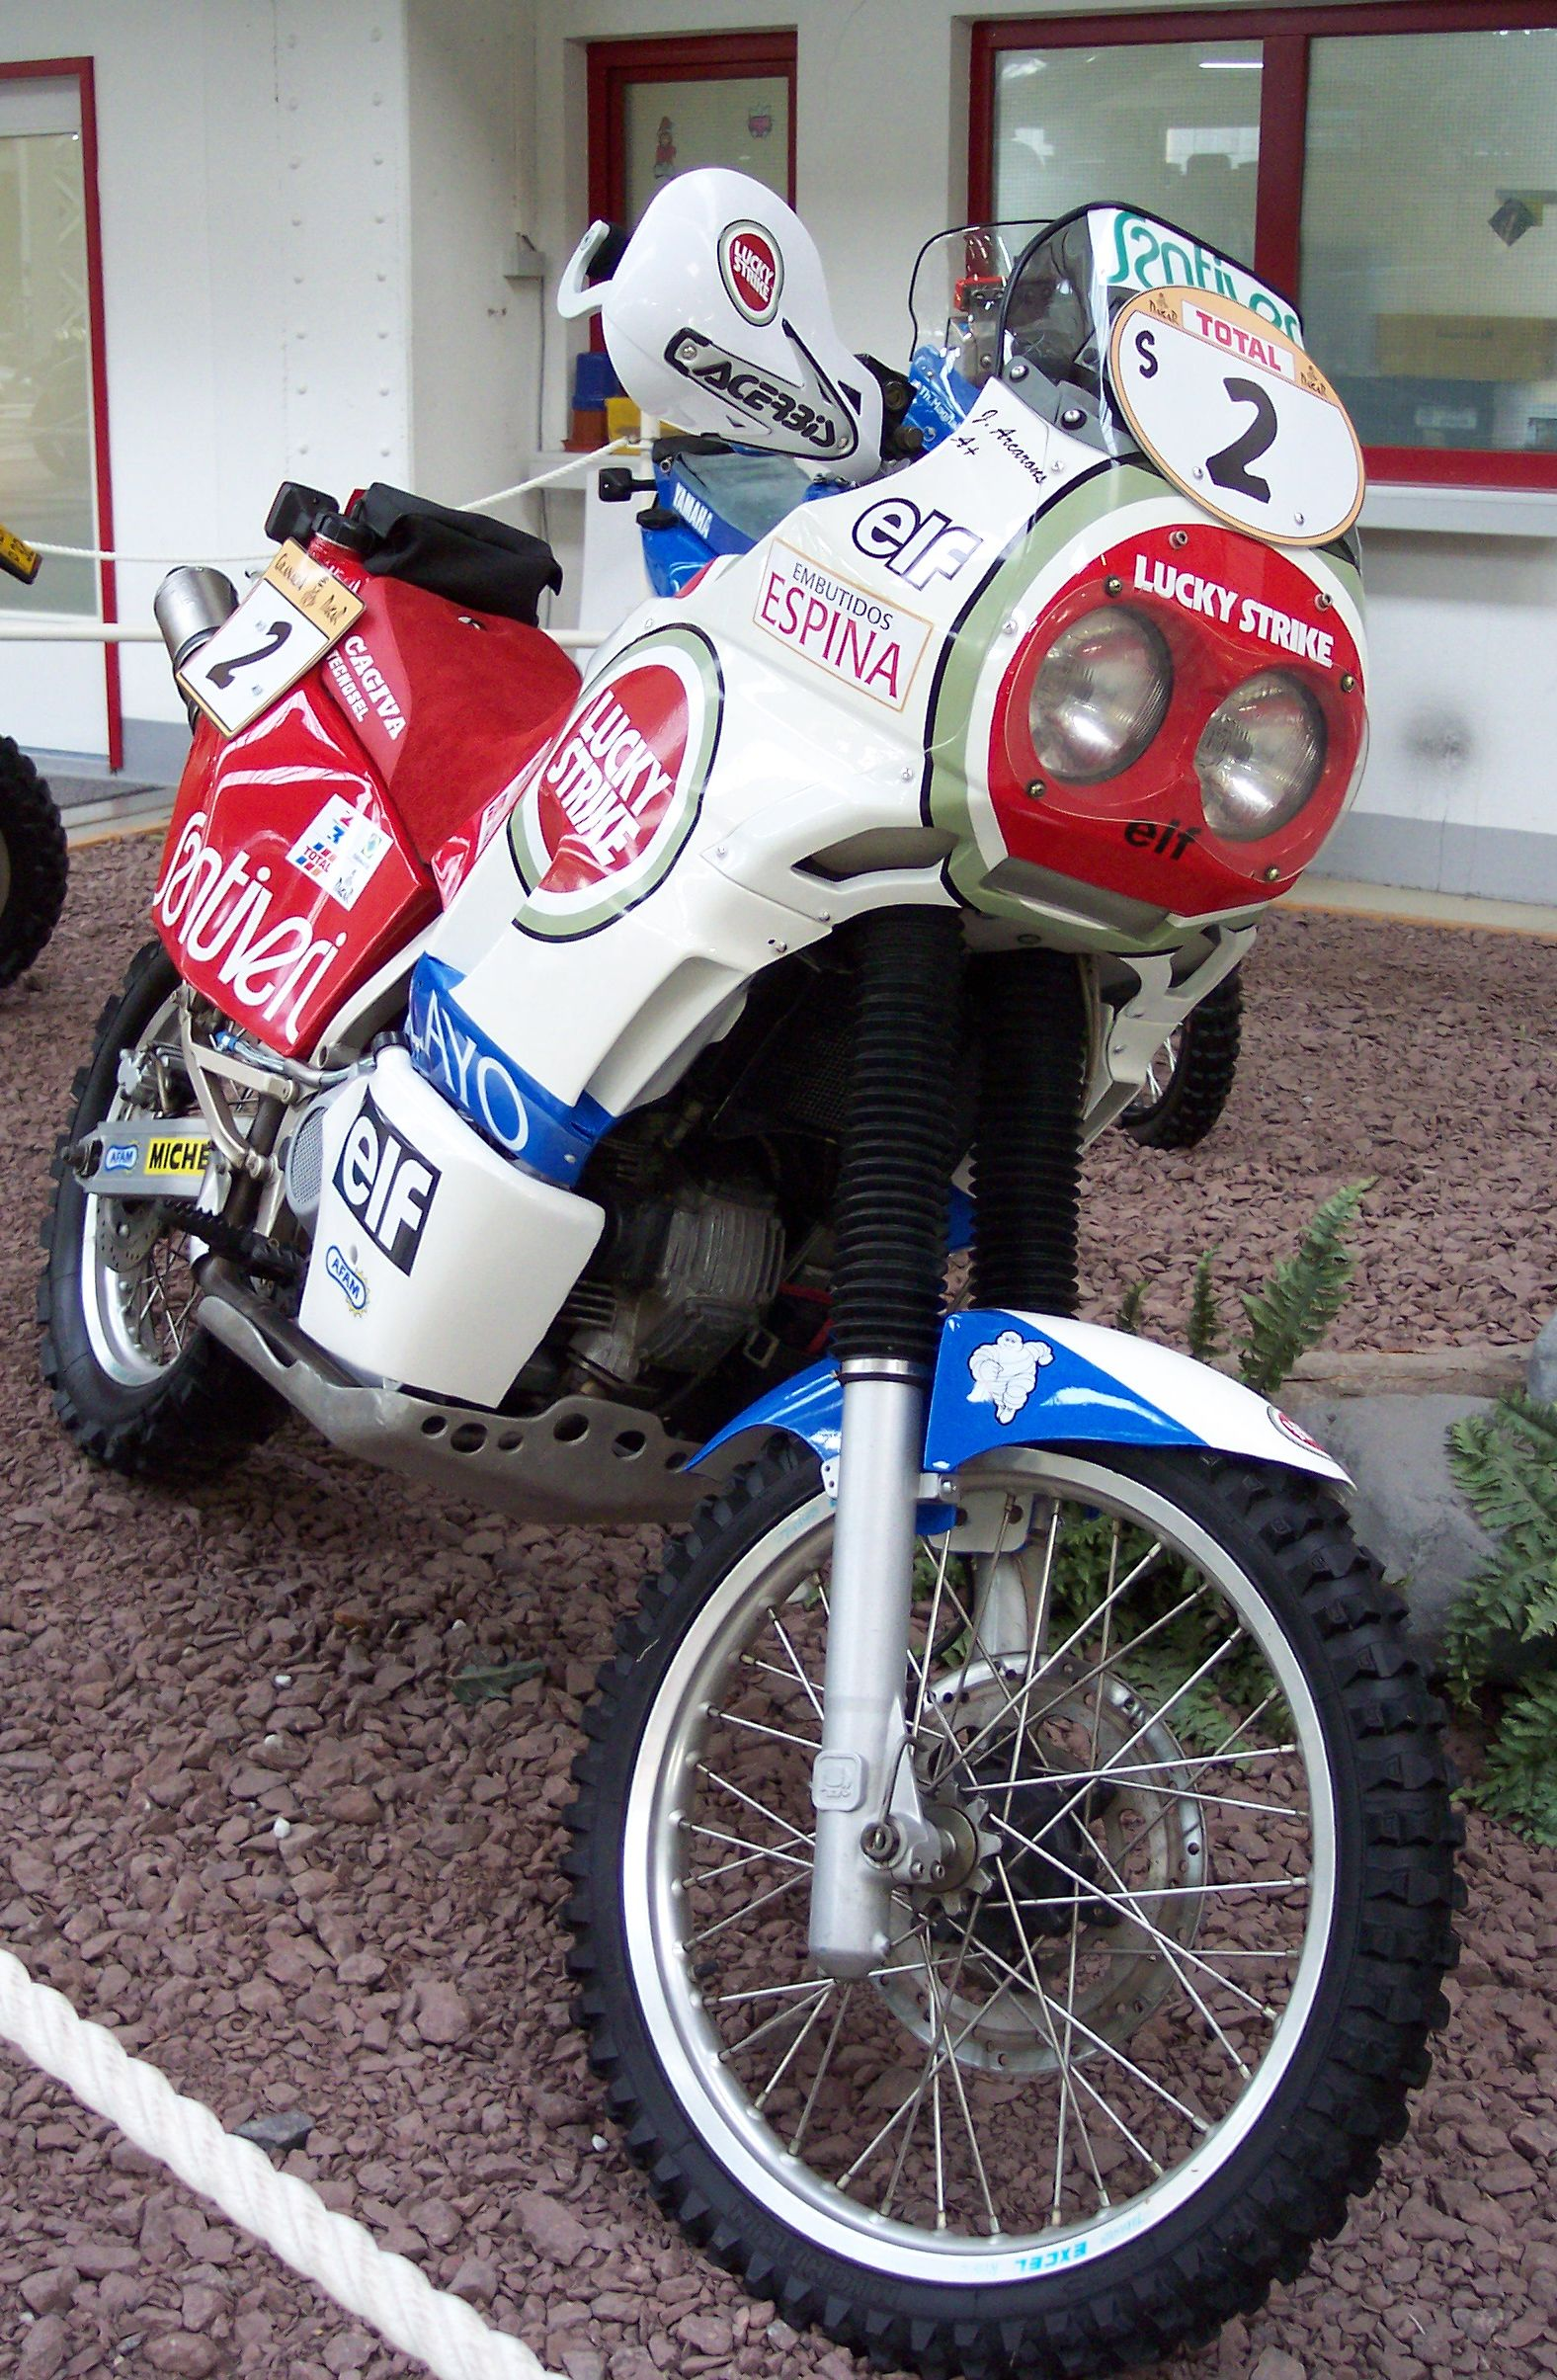 Cagiva Grand Canyon 900 I.E. 1997 #11